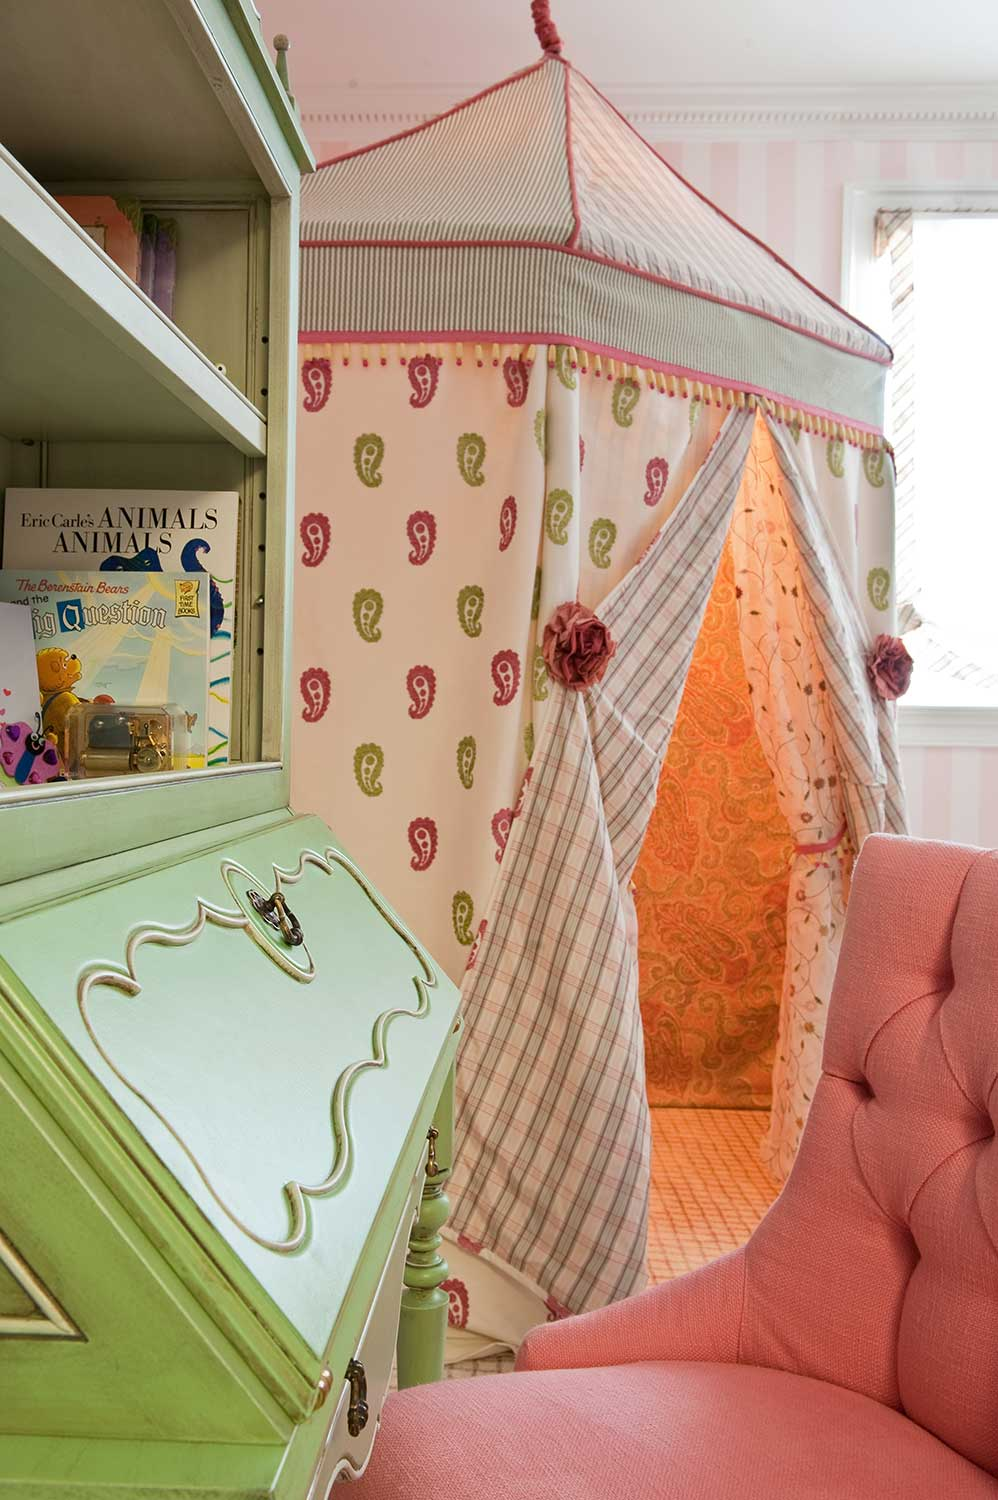 decorative_play_tent_for_girls_room_with_desk.jpg